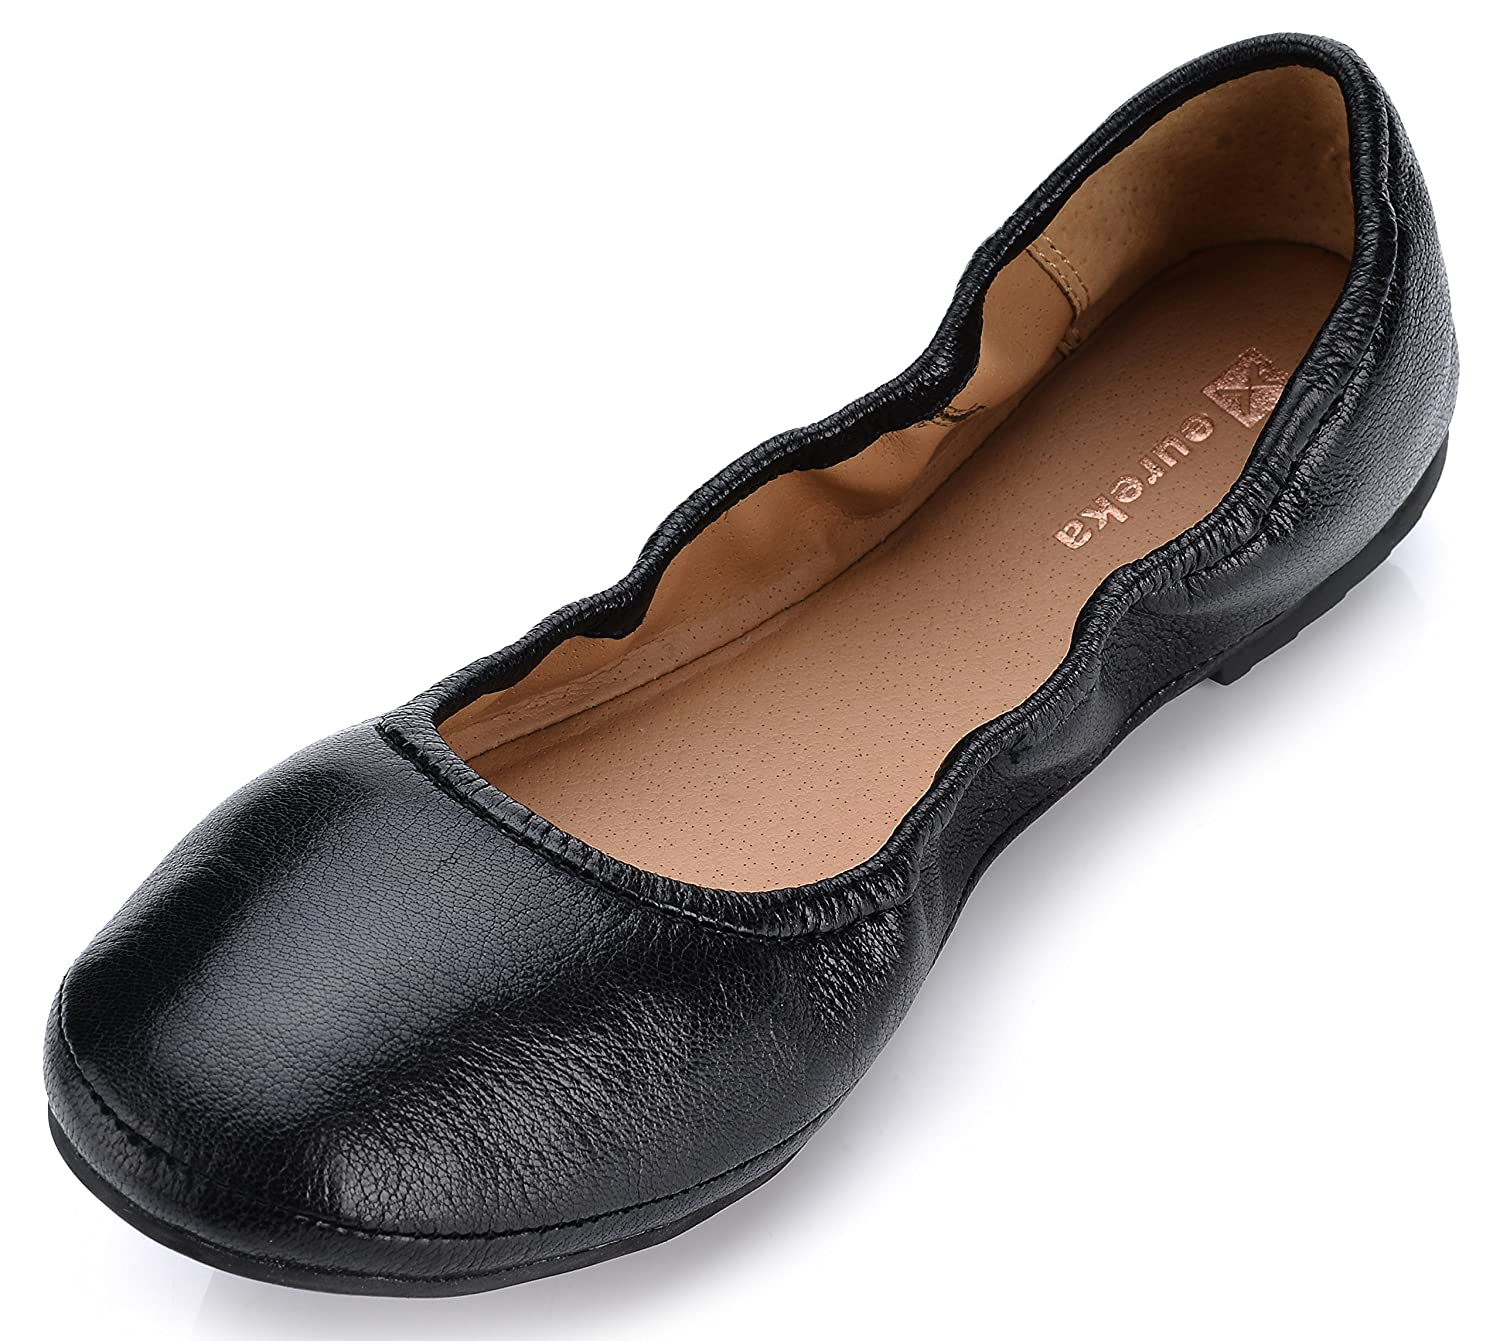 Eureka USA Women's Audrey Leather Ballet Flat B074V3LRGZ 7 B(M) US|201 Schwalz Black